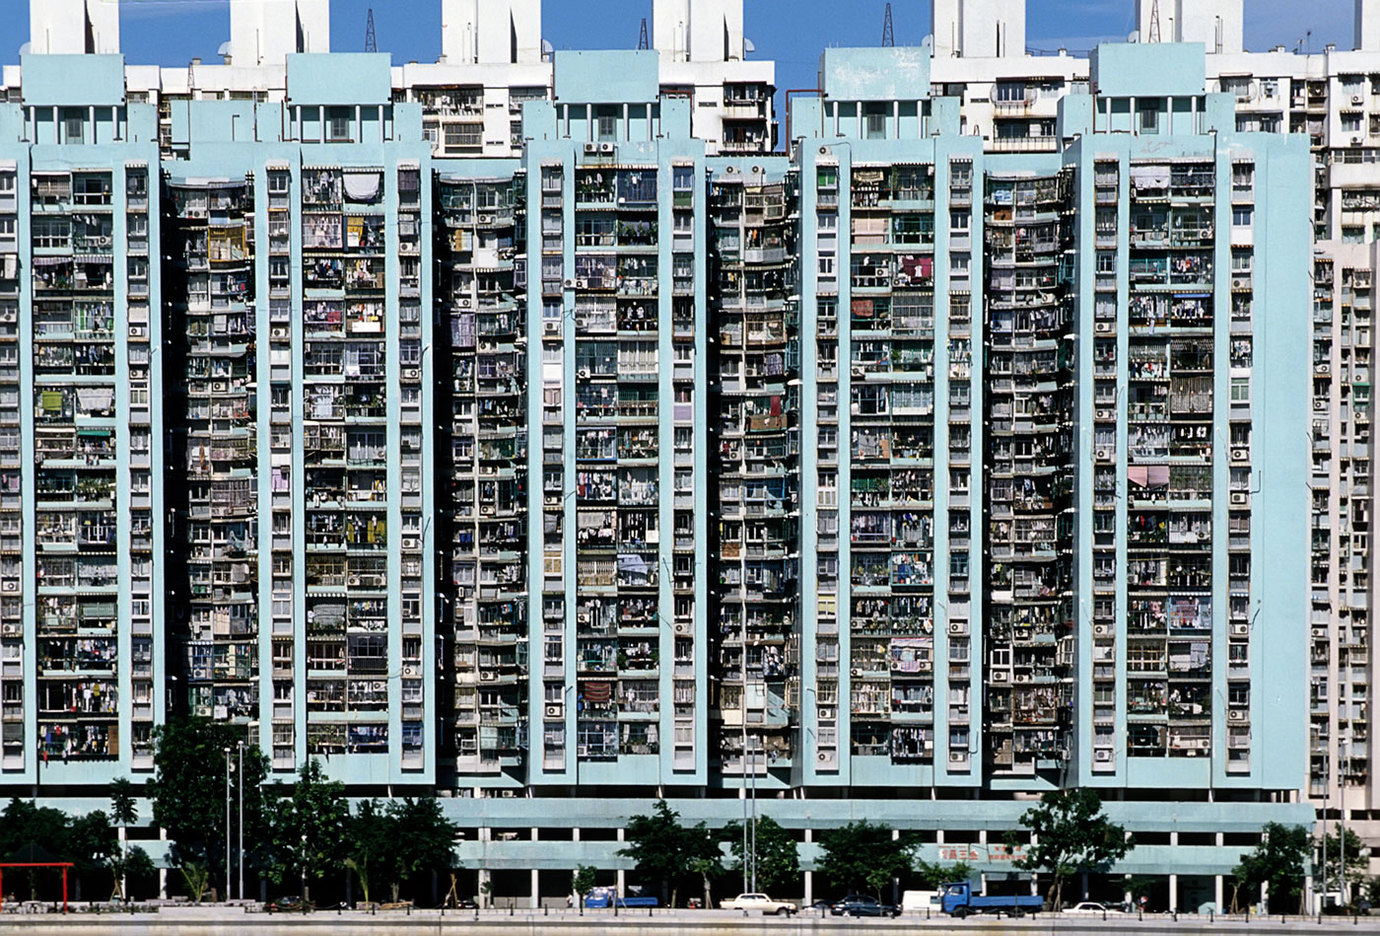 Unsustainable overpopulation in Macau, China : CRISIS : Viviane Moos |  Documentary Photographer